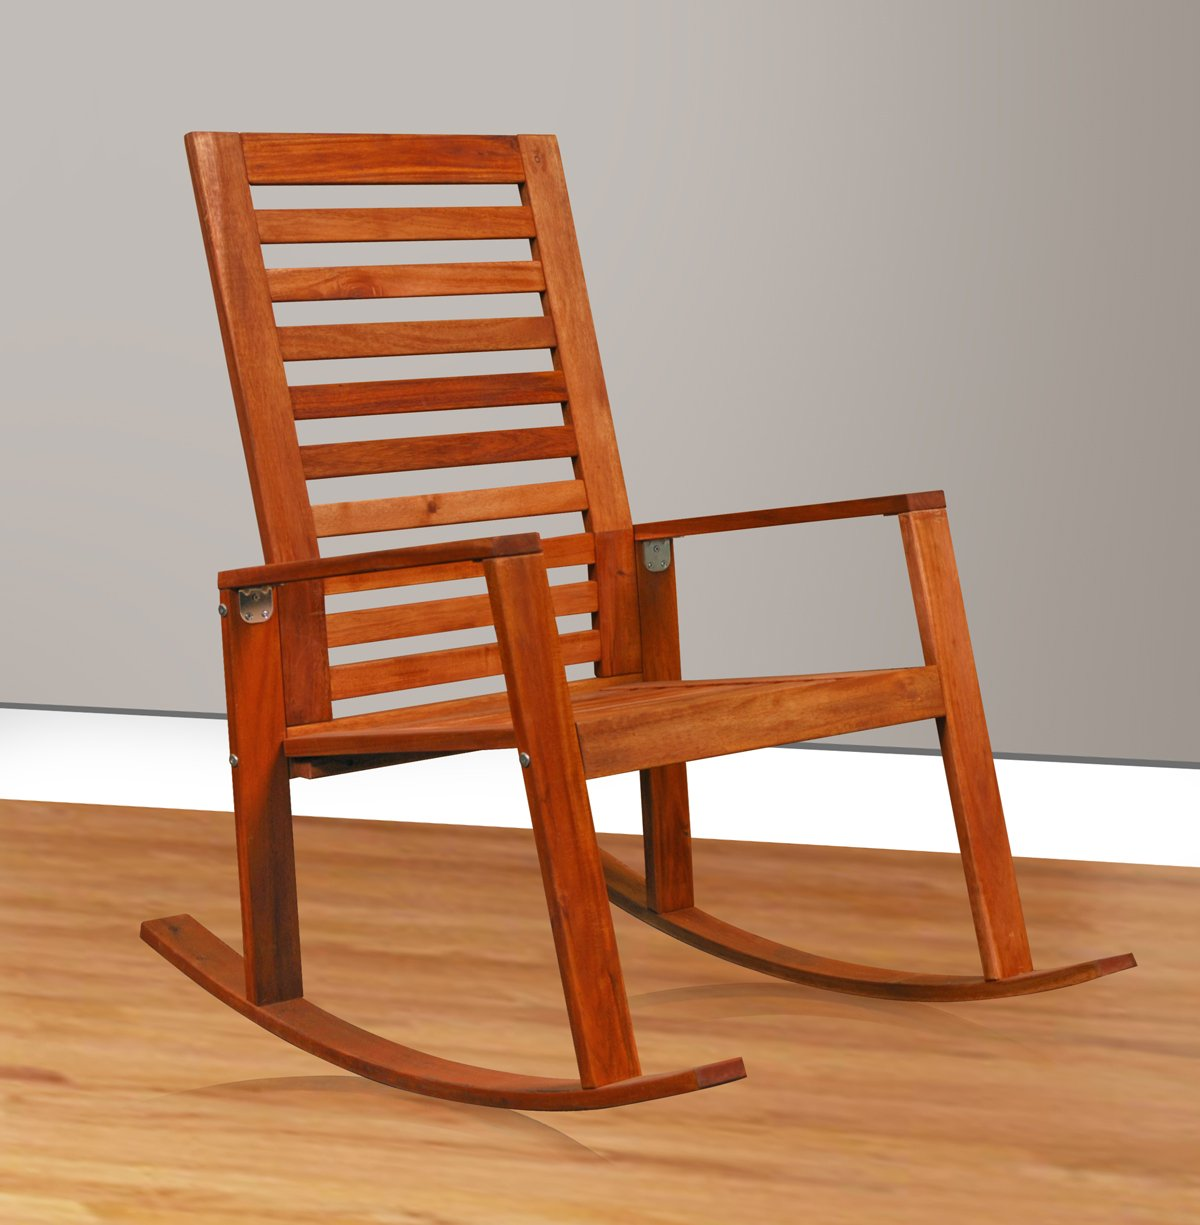 Amazon.com: Wood - Chairs / Patio Furniture & Accessories: Patio